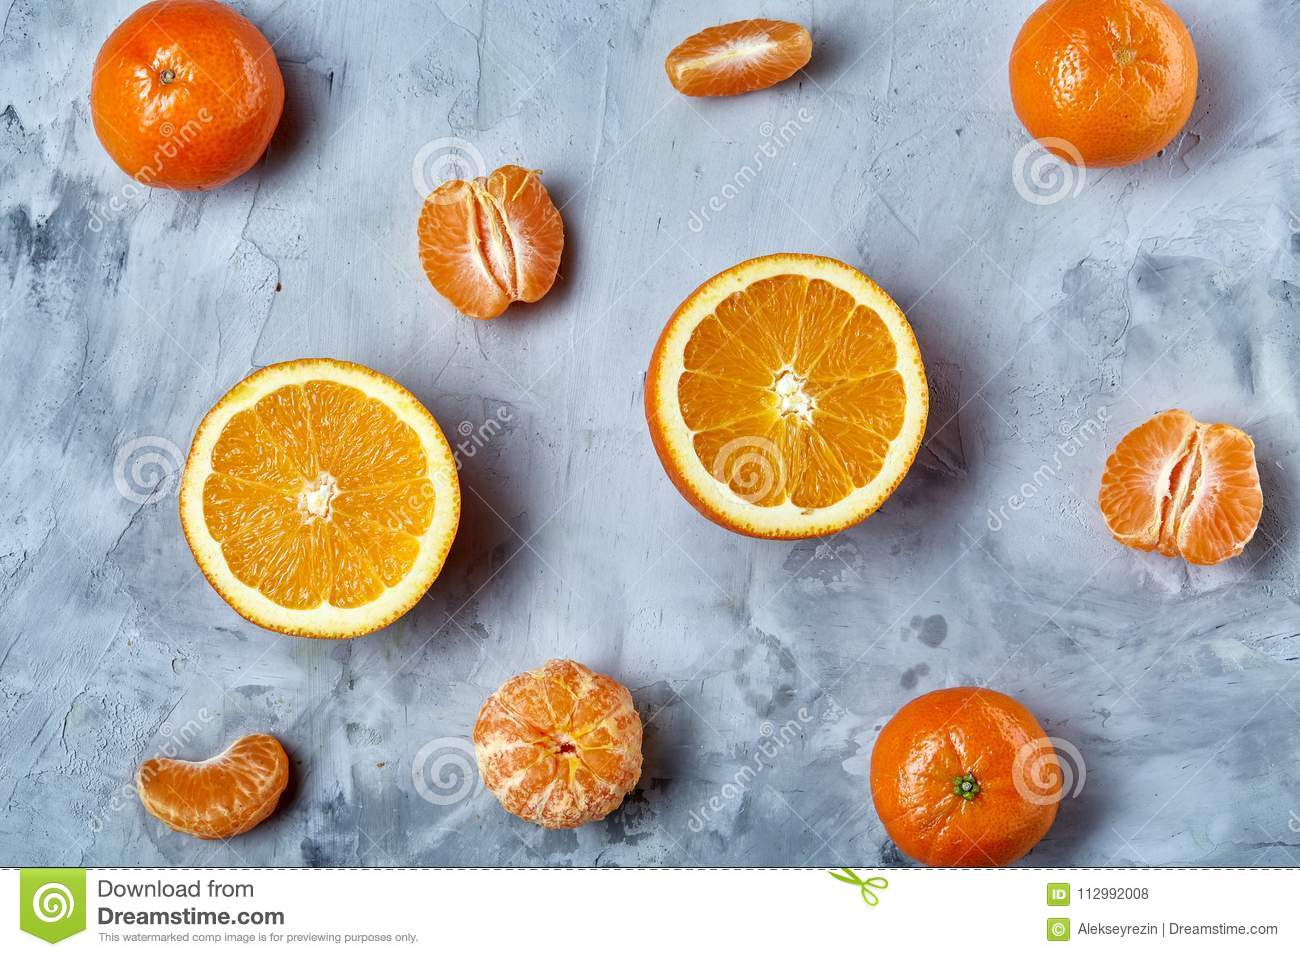 Variety of fresh citrus fruits for making juice or smoothie over light textured background, top view, selective focus.